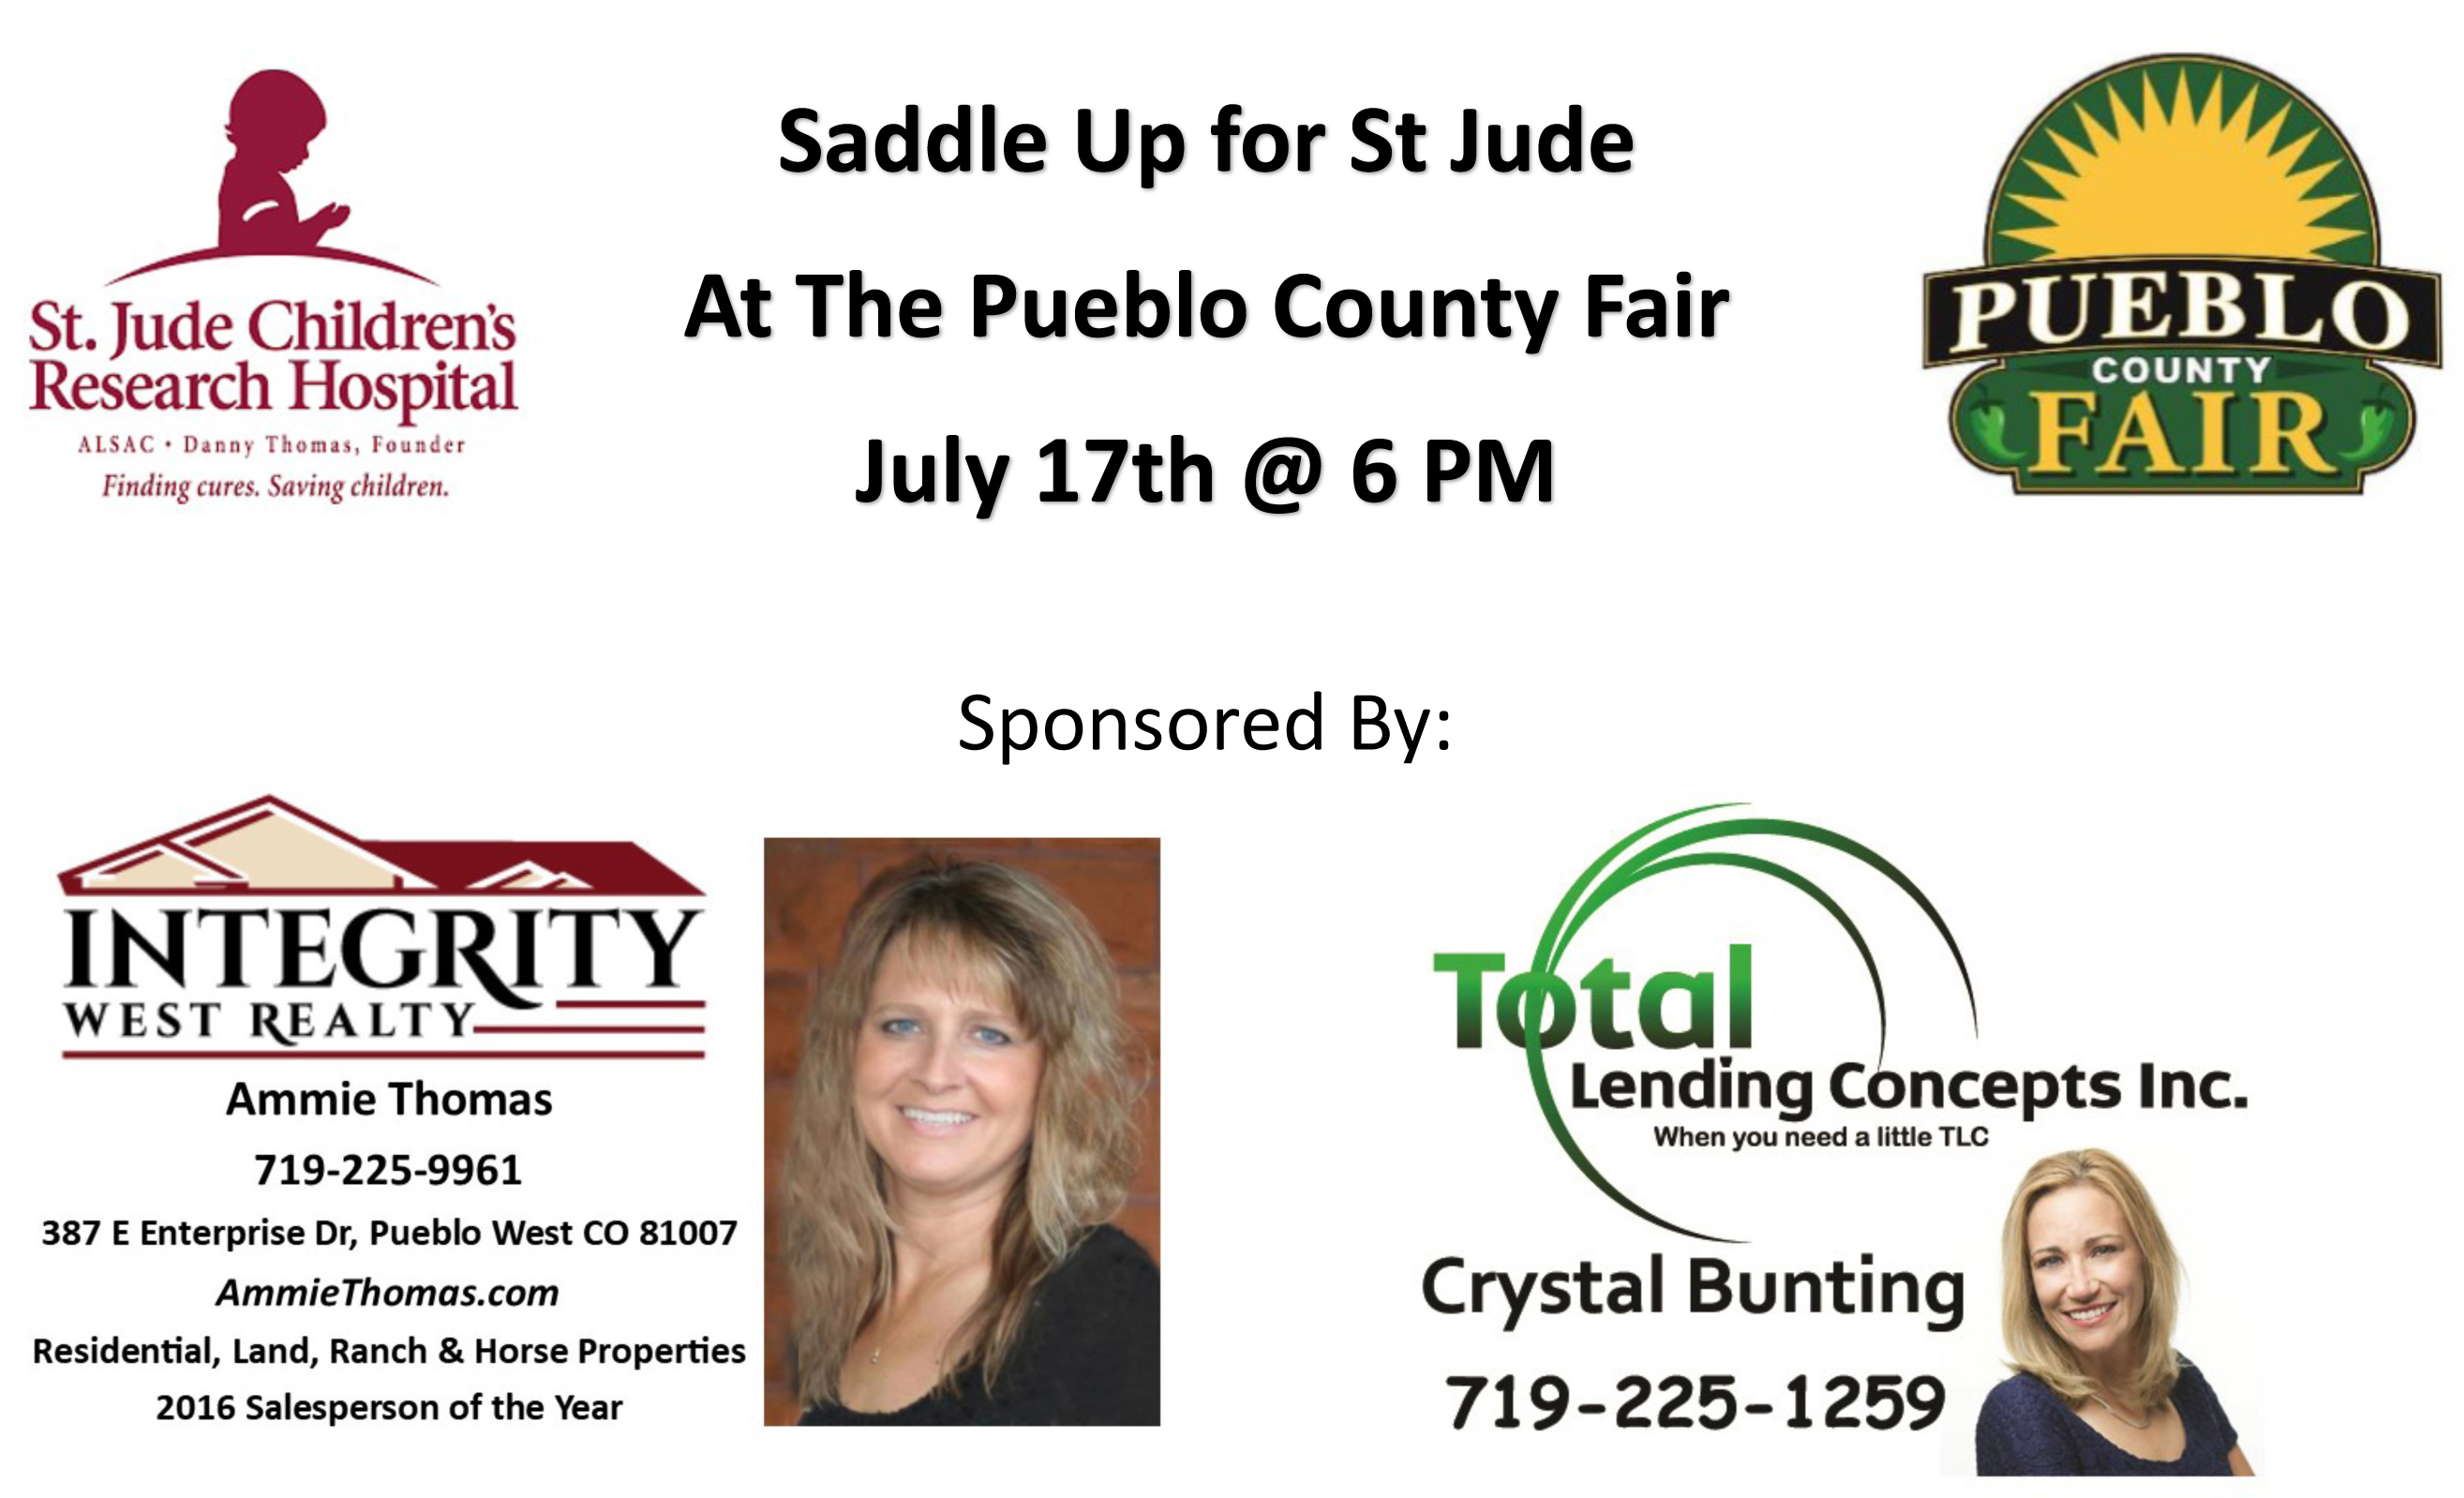 Saddle Up for St Jude at the Pueblo County Fair 2018